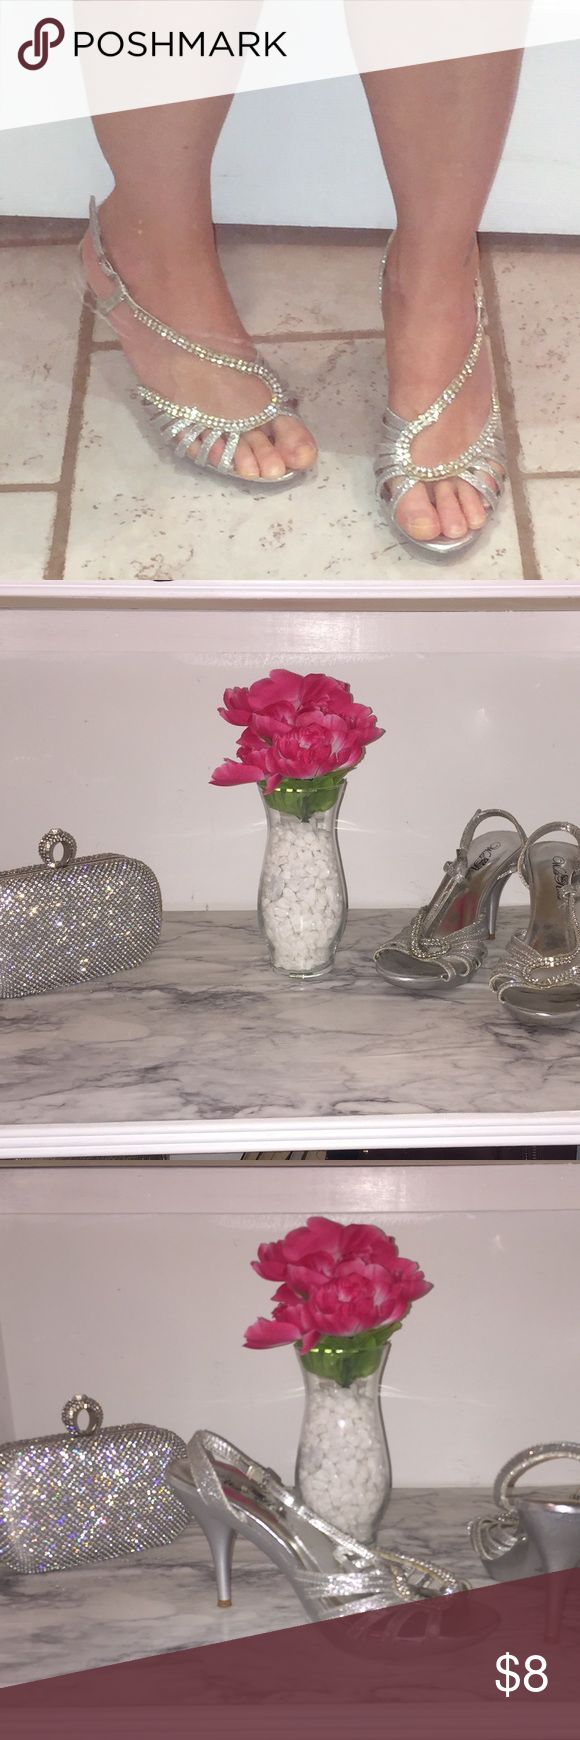 Silver high heels! 3in heels silver sparkle, perfect for bridesmaid dresses! Wild Rose Shoes Heels